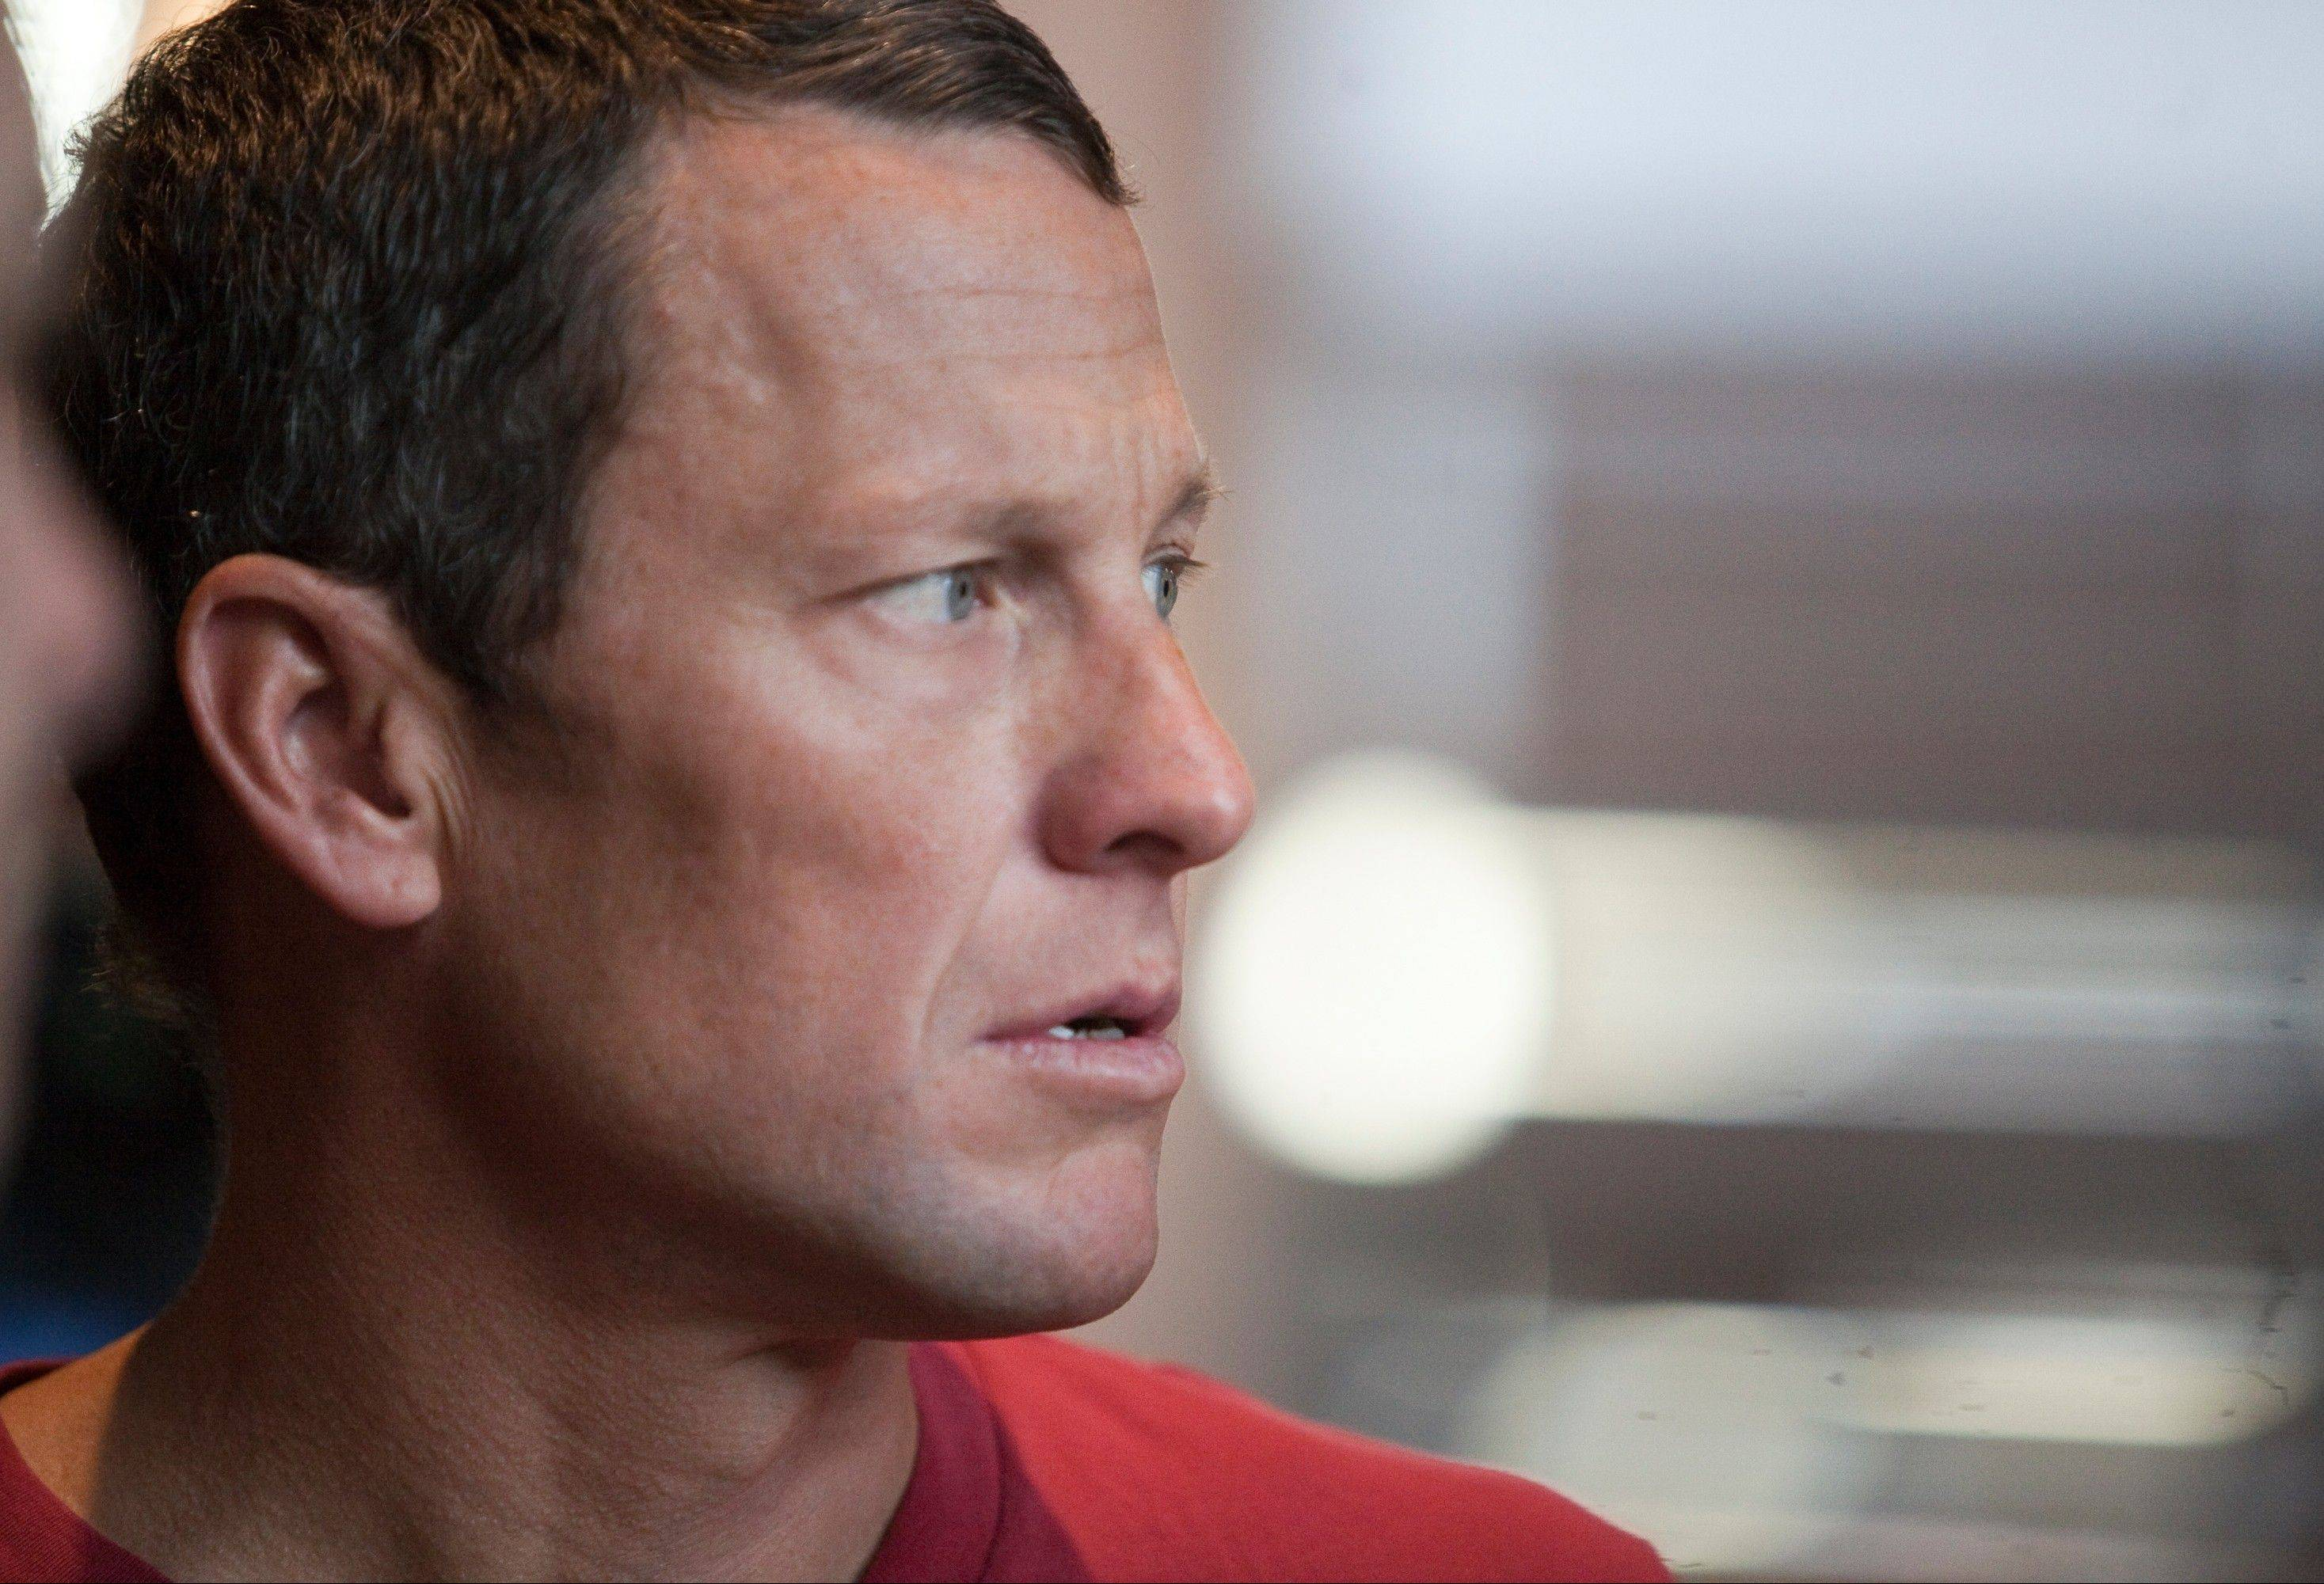 Cyclist Lance Armstrong, who has been embroiled in a doping scandal that stripped him of his seven Tour de France titles and forced him to step down from his Livestrong Foundation, is scheduled to sit down with Oprah Winfrey in a 90-minute interview that will air Jan. 17 on OWN.